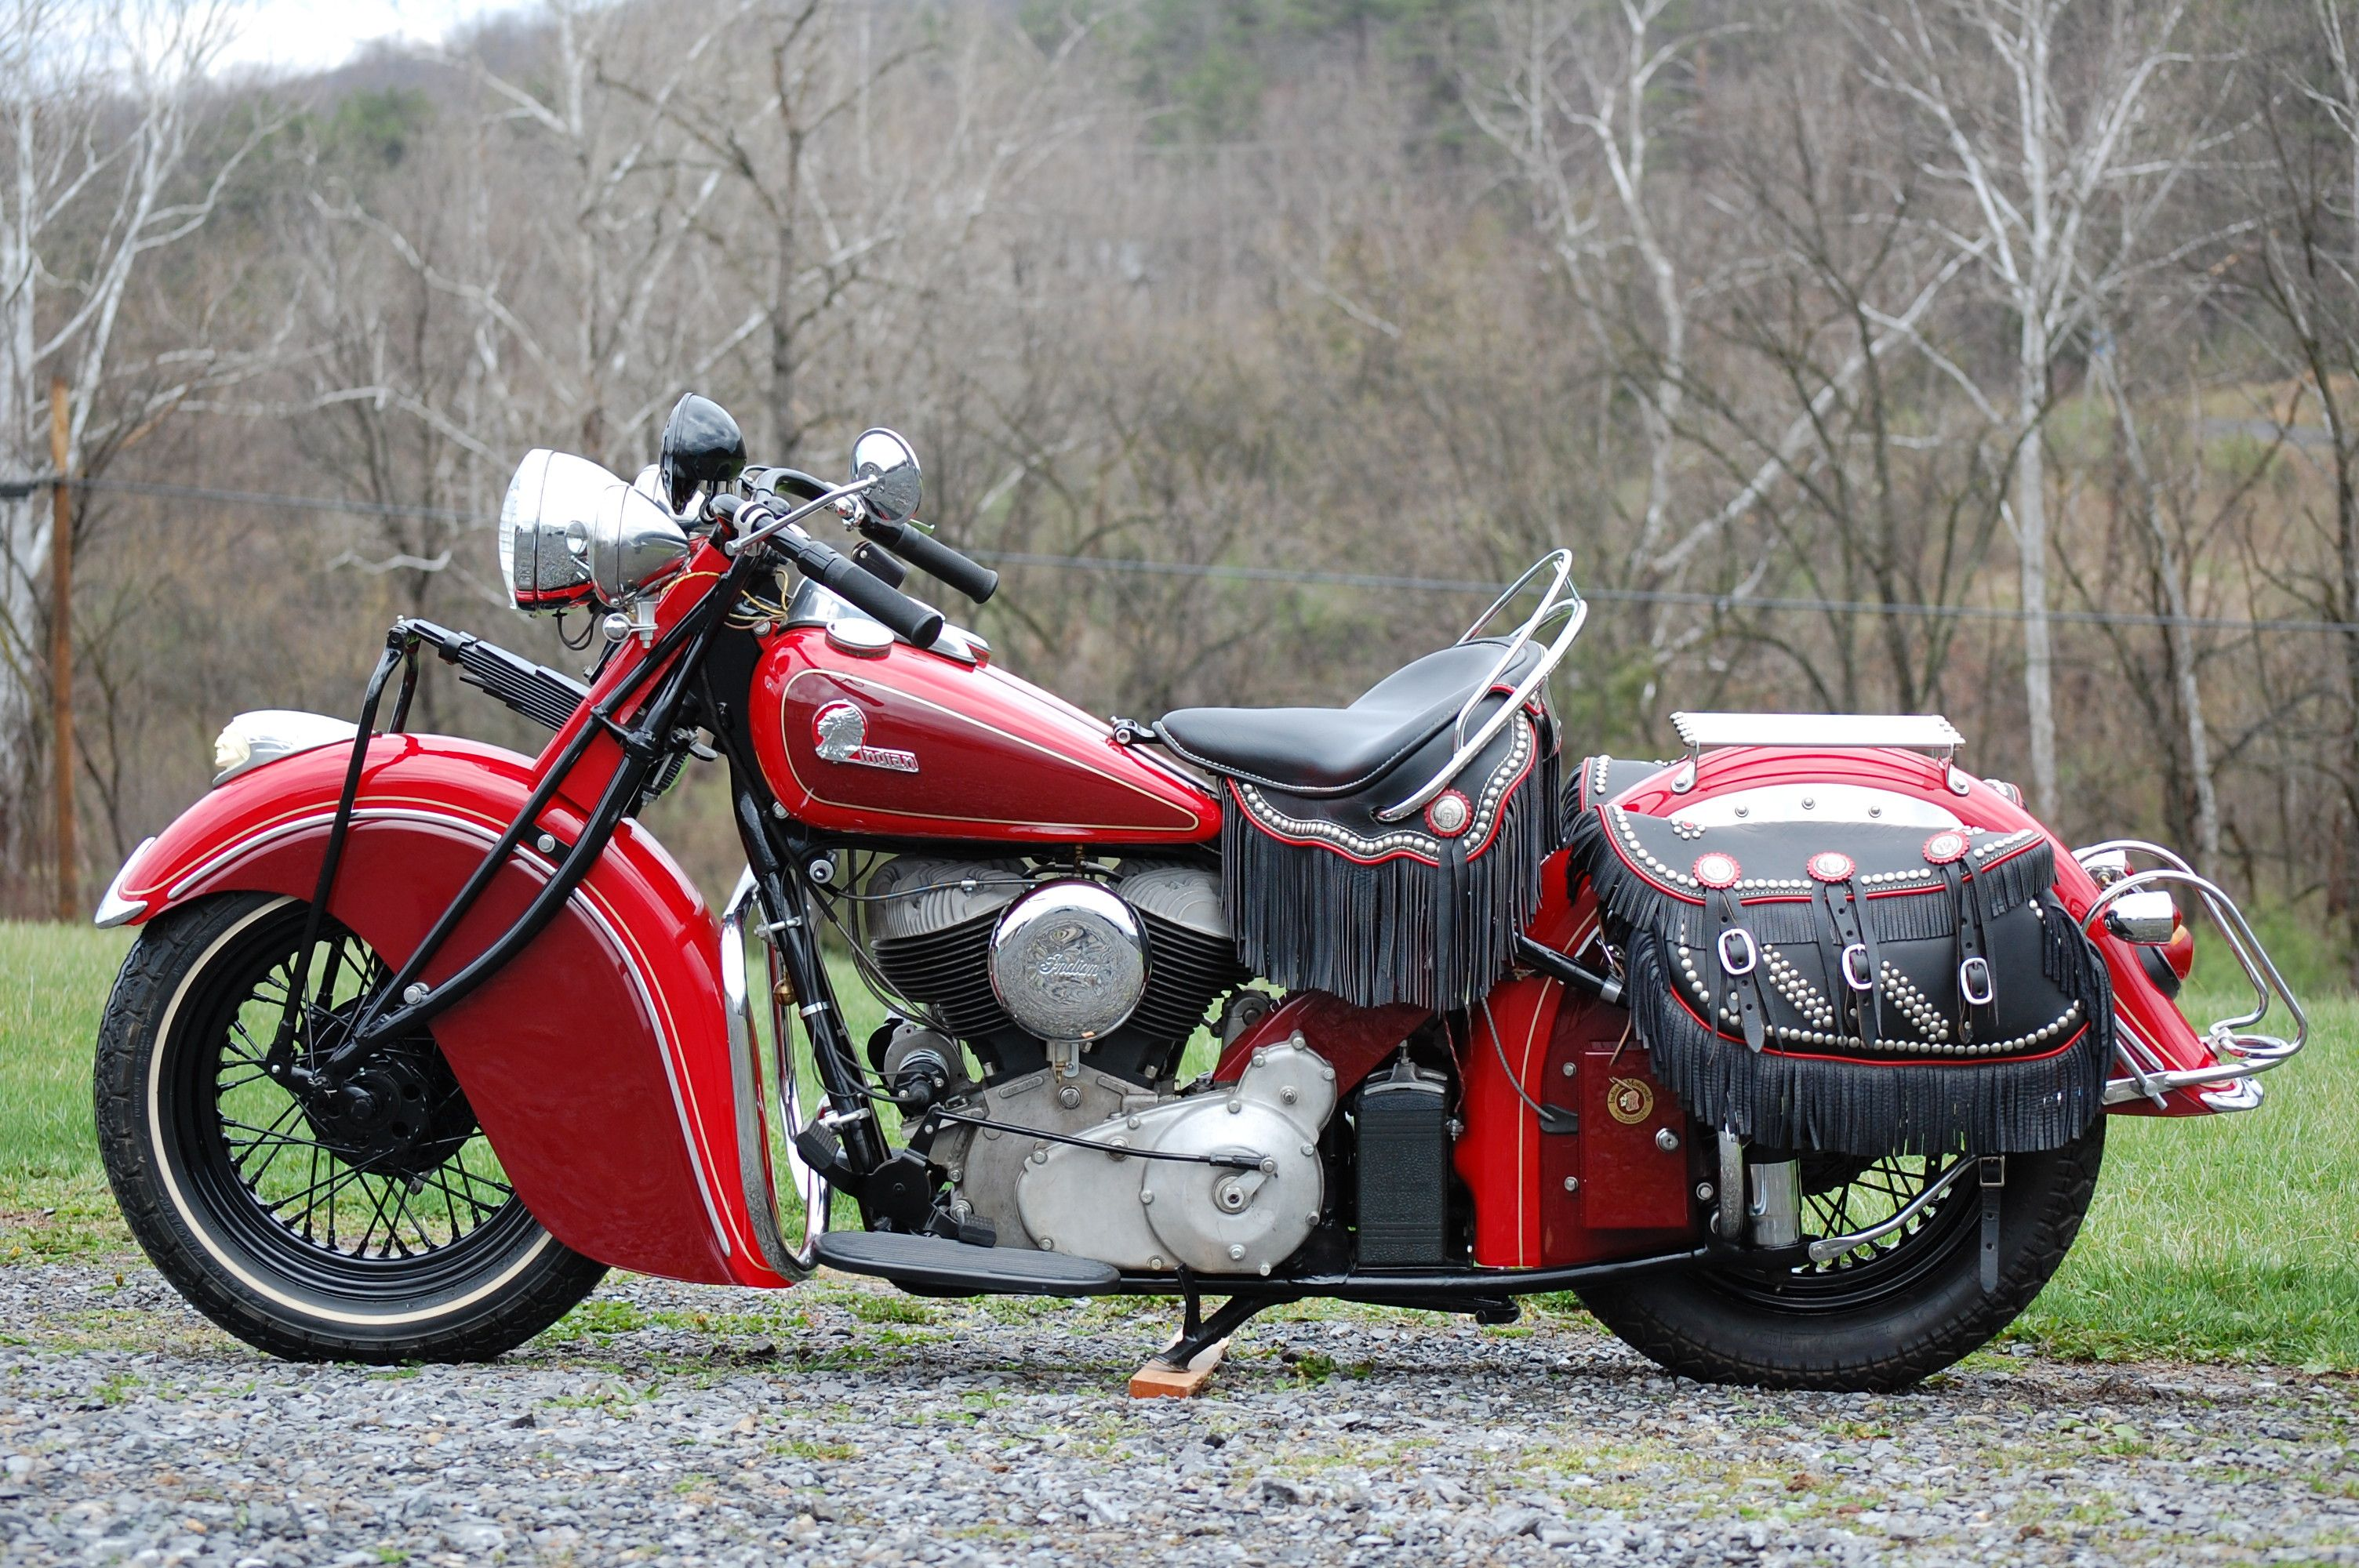 Motorcycle Throwback The 1945 Indian Chief BikeBandit